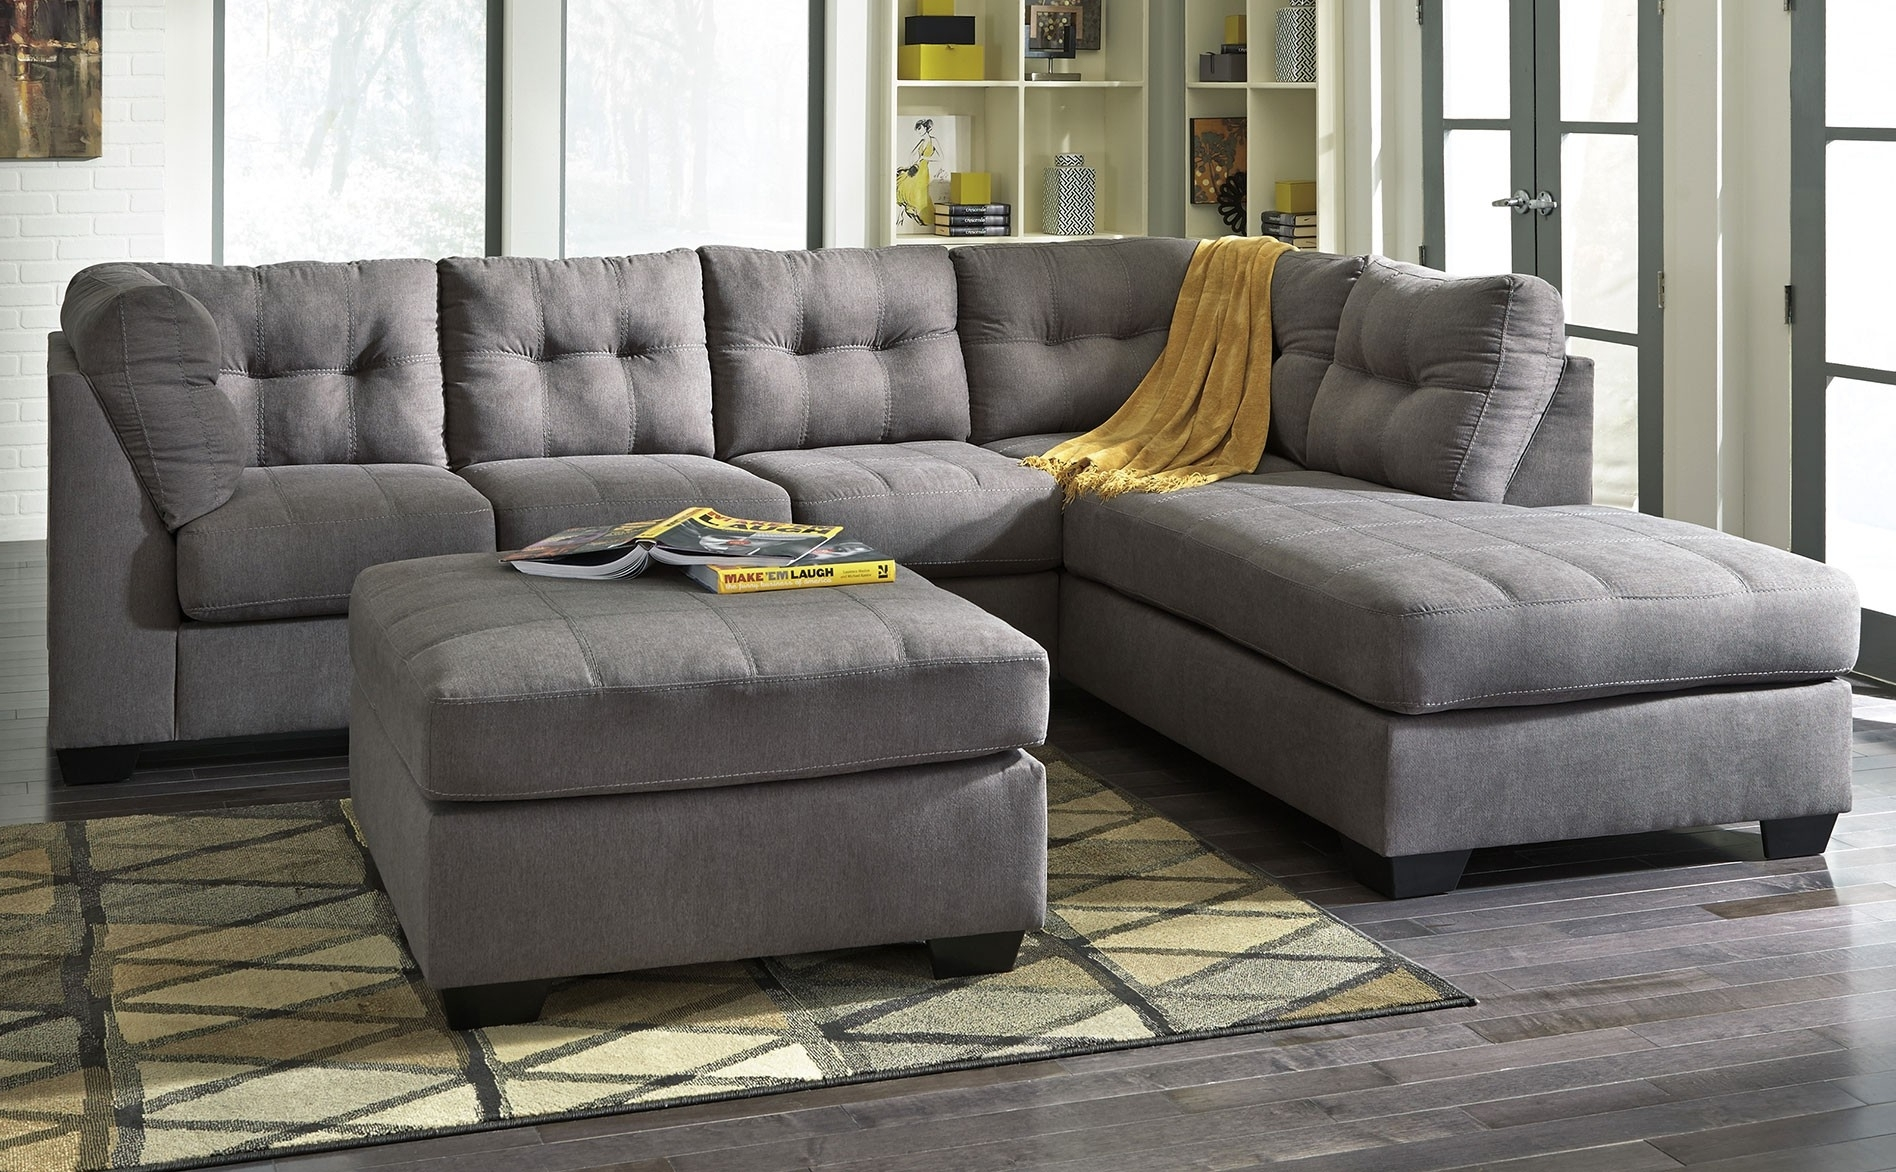 Most Recently Released Sectional Sofas Under 500 Throughout Sofa : Leather Couch Under 500 Sectionals Under 400 Room Couch (View 5 of 15)